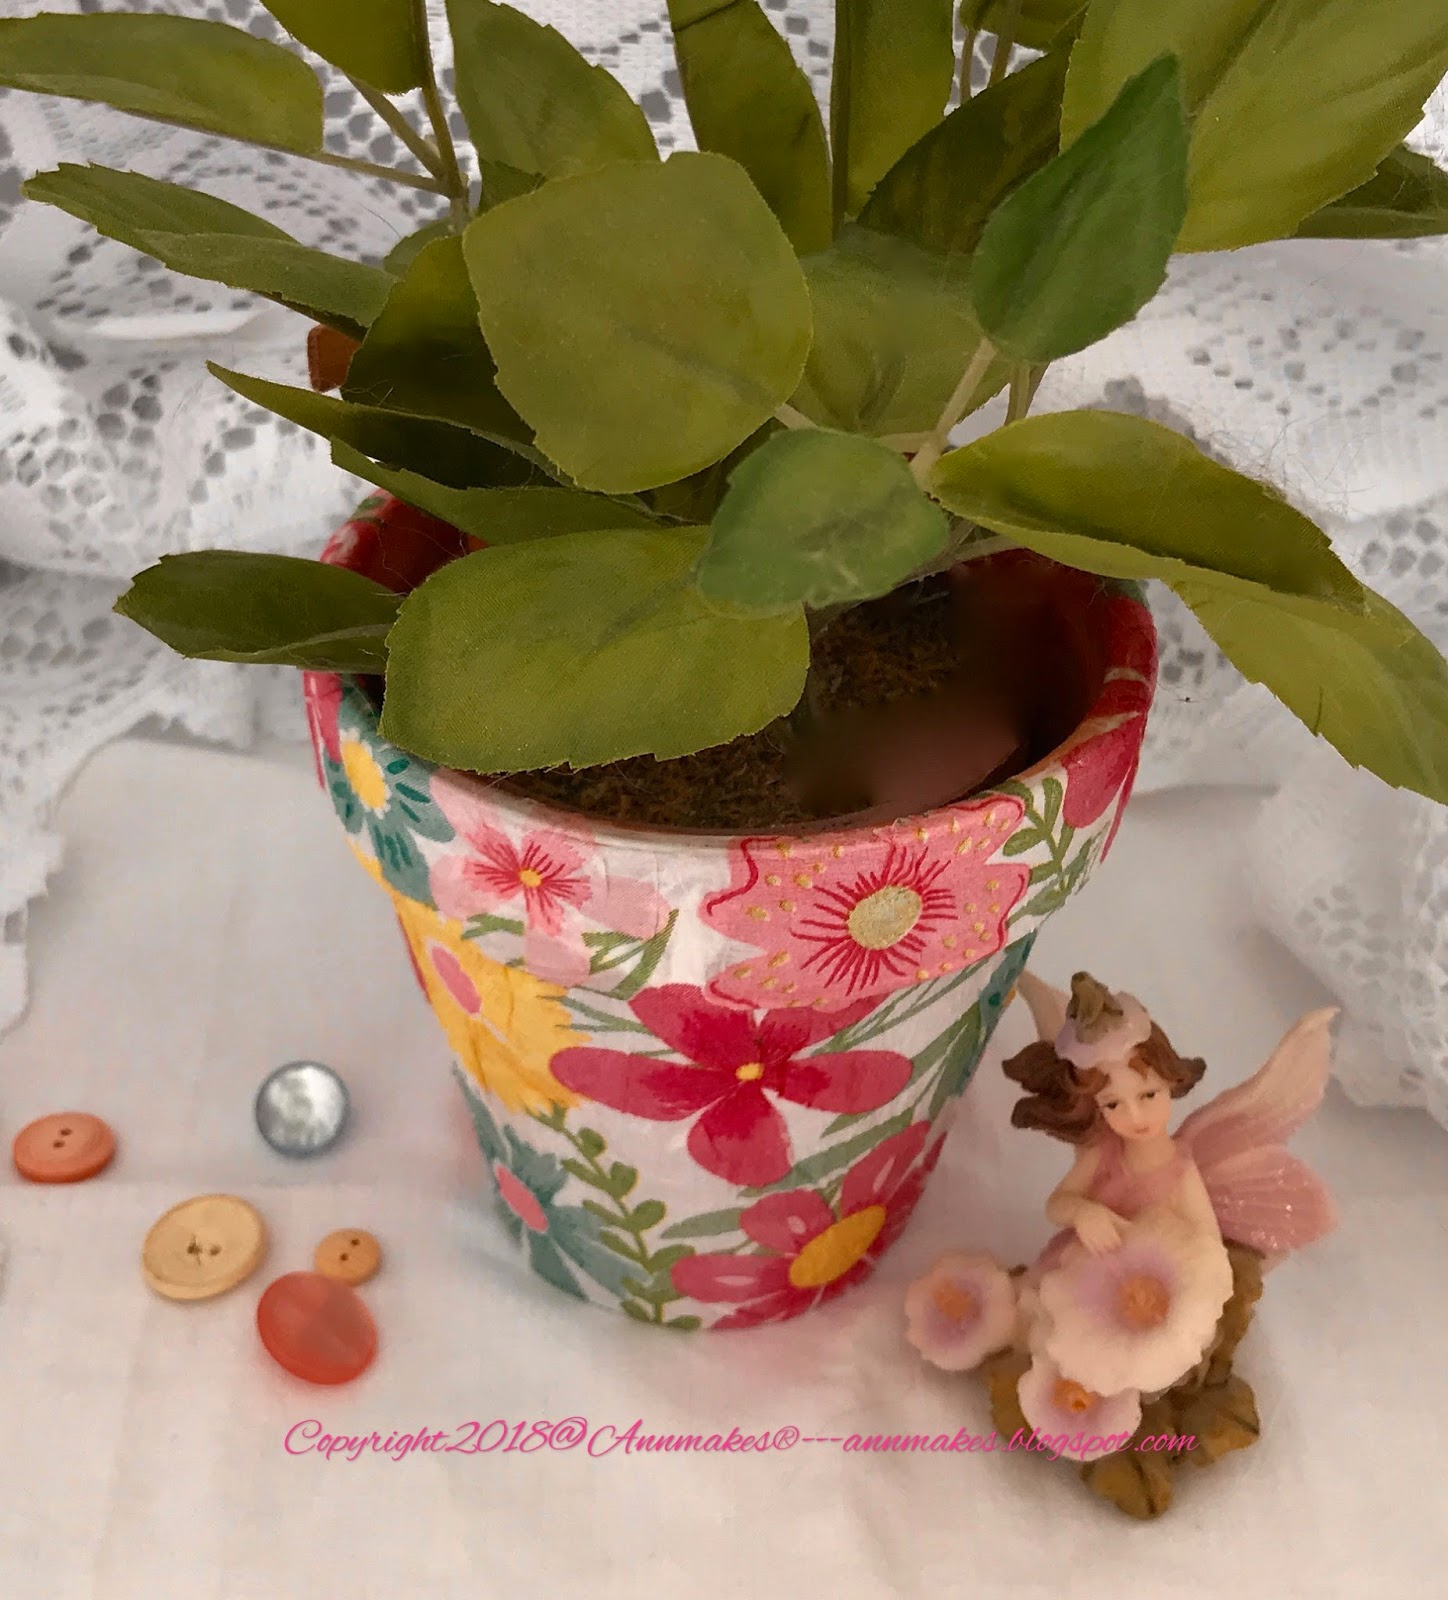 Annmakes Decoupaged Flower Pot How To